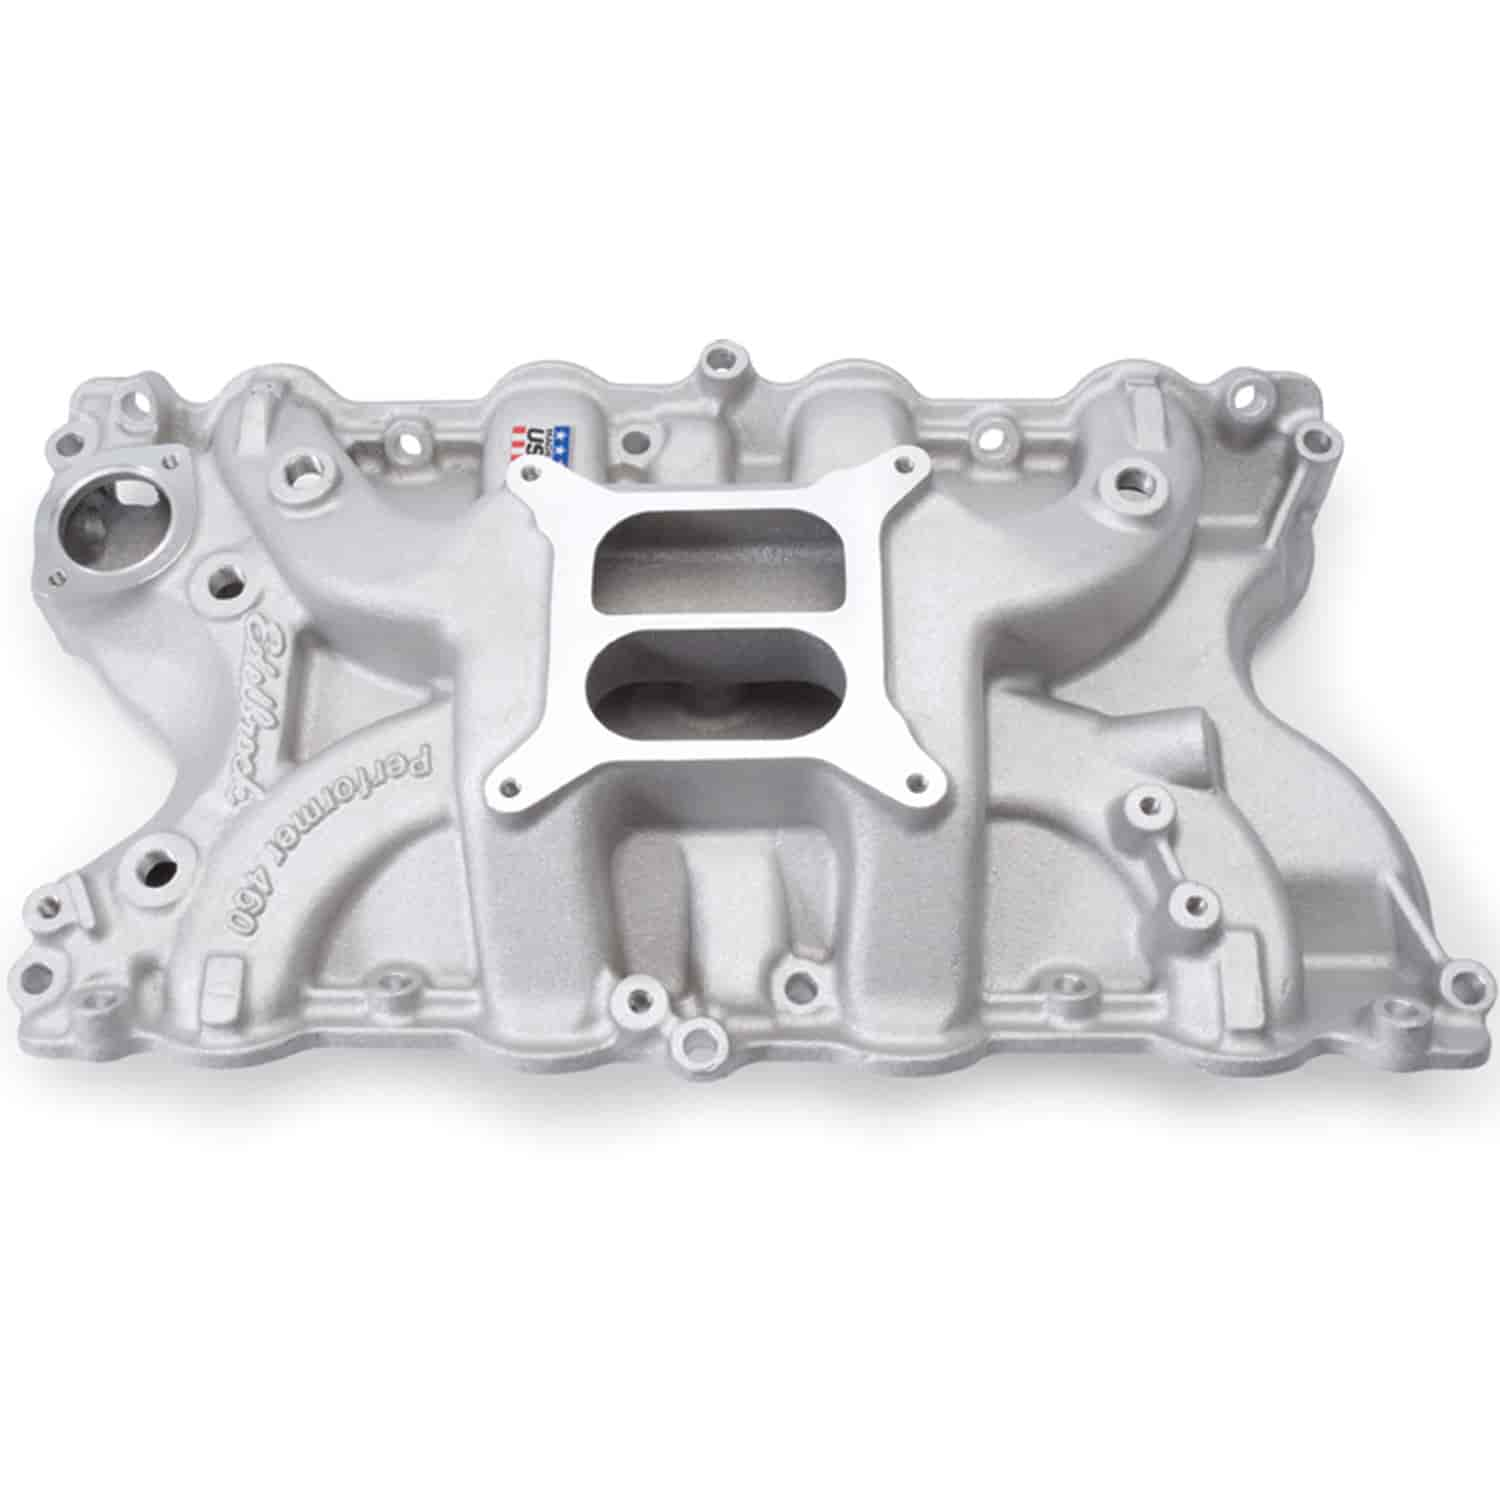 Edelbrock 2166 - Edelbrock Performer Manifolds for Ford